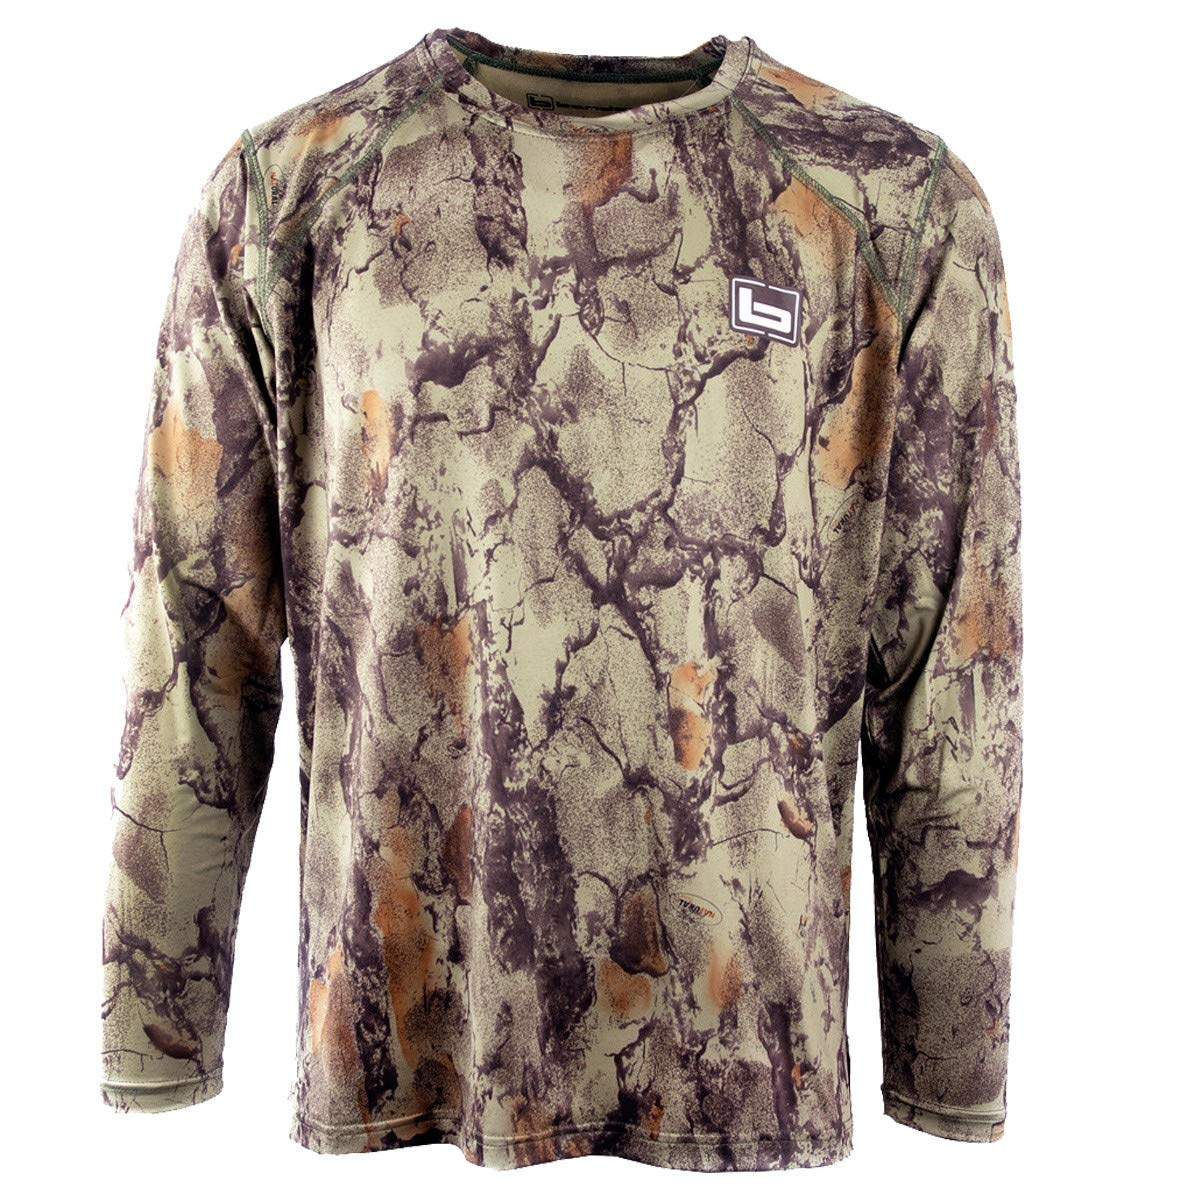 Banded Tech Stalker Mock Shirt Natural Gear Extra Large by Banded